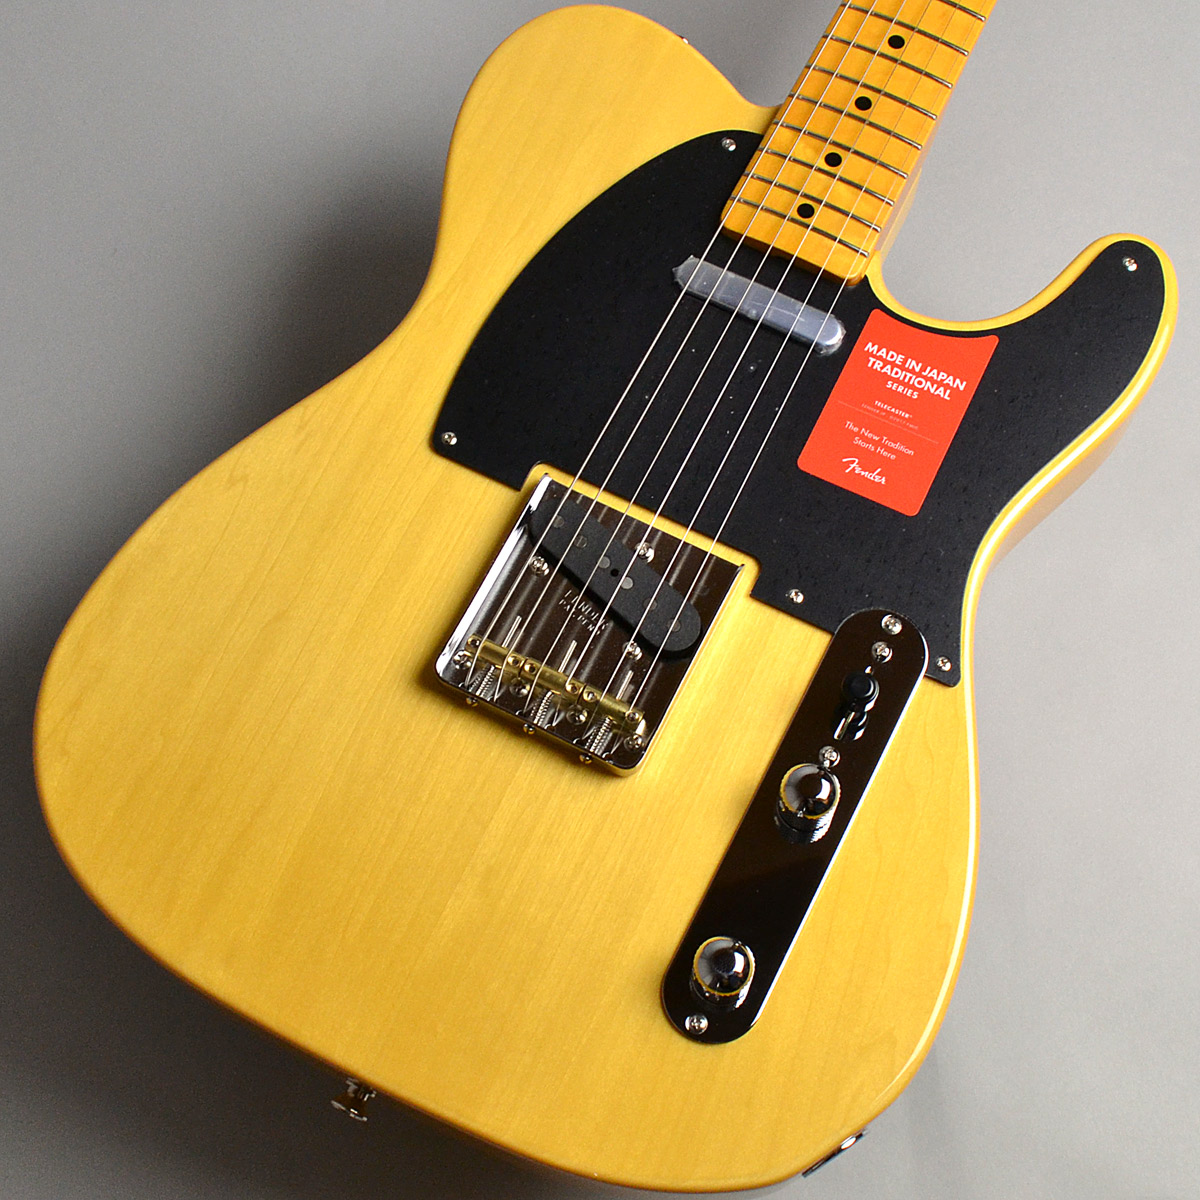 Made in Japan Traditional 50s Telecasterのボディトップ-アップ画像